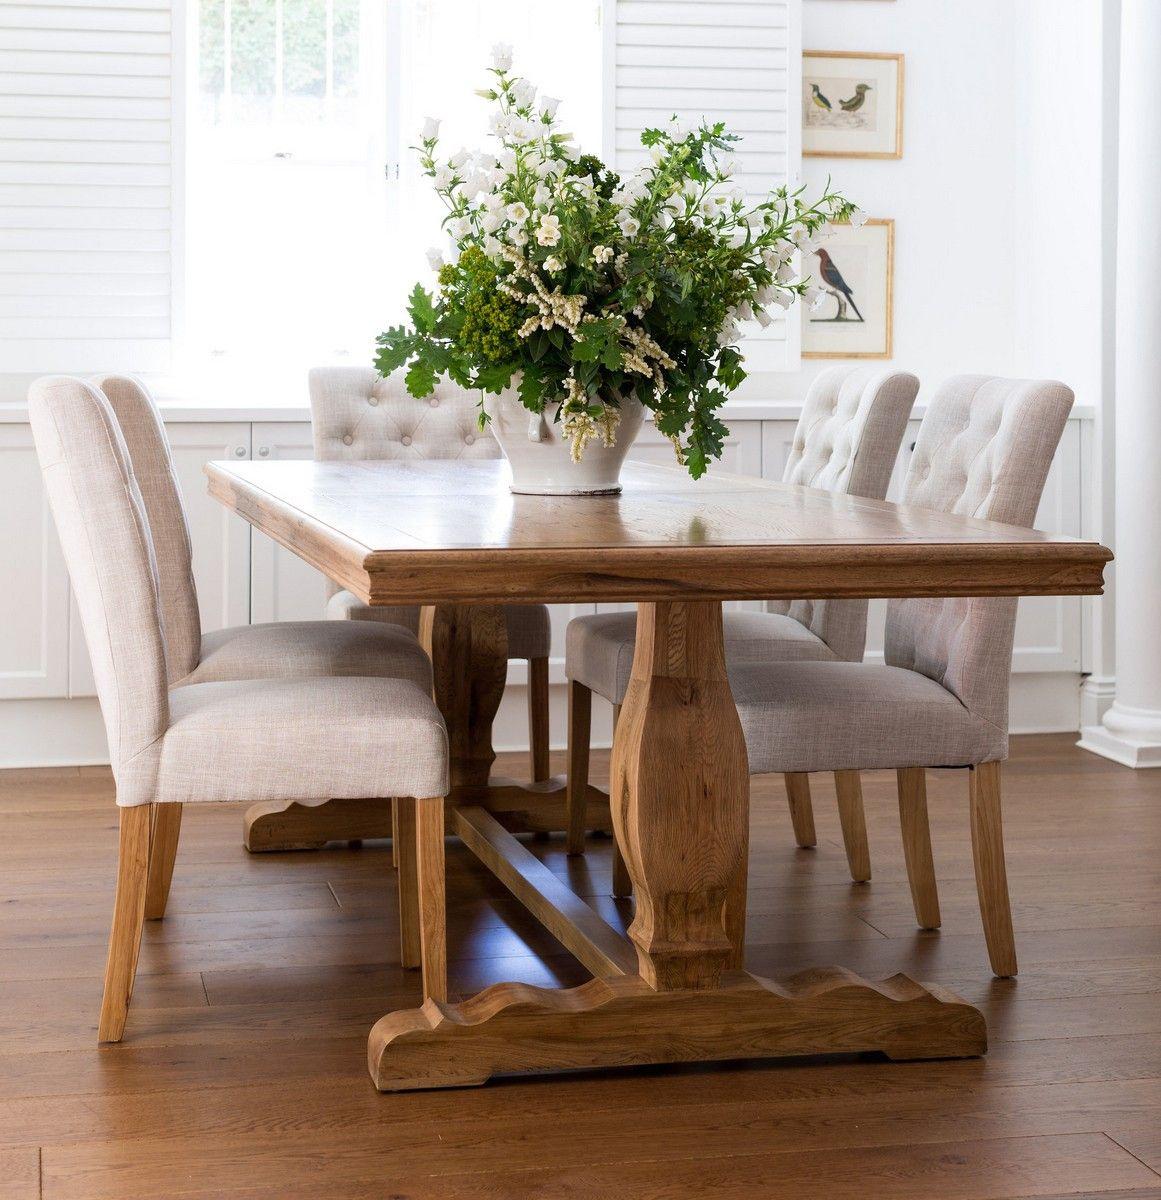 Comfortable White Padded Chairs and Wide Farmhouse Style